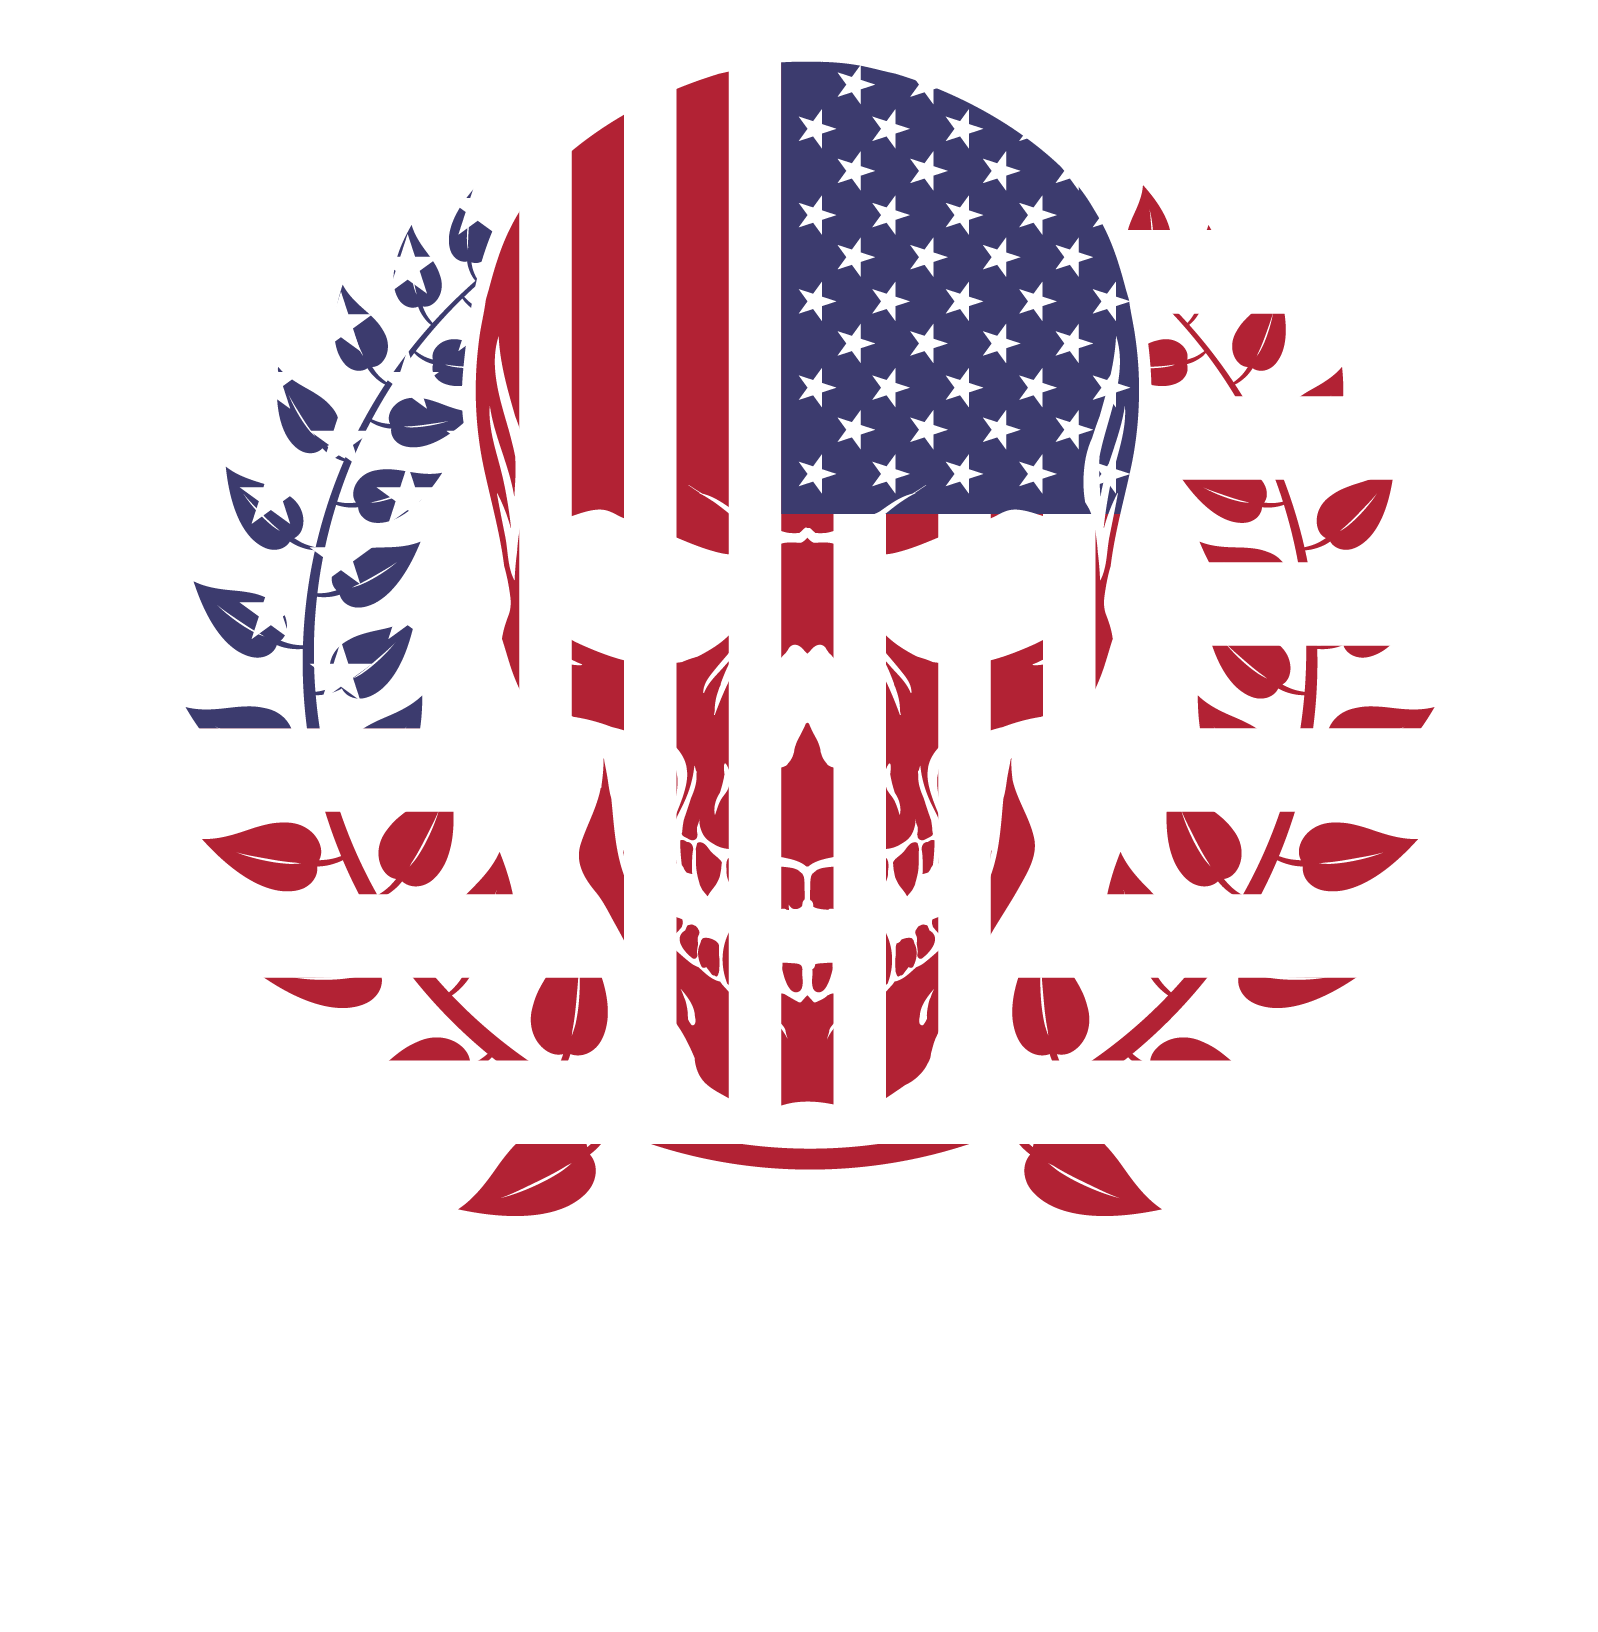 Made In USA Skull